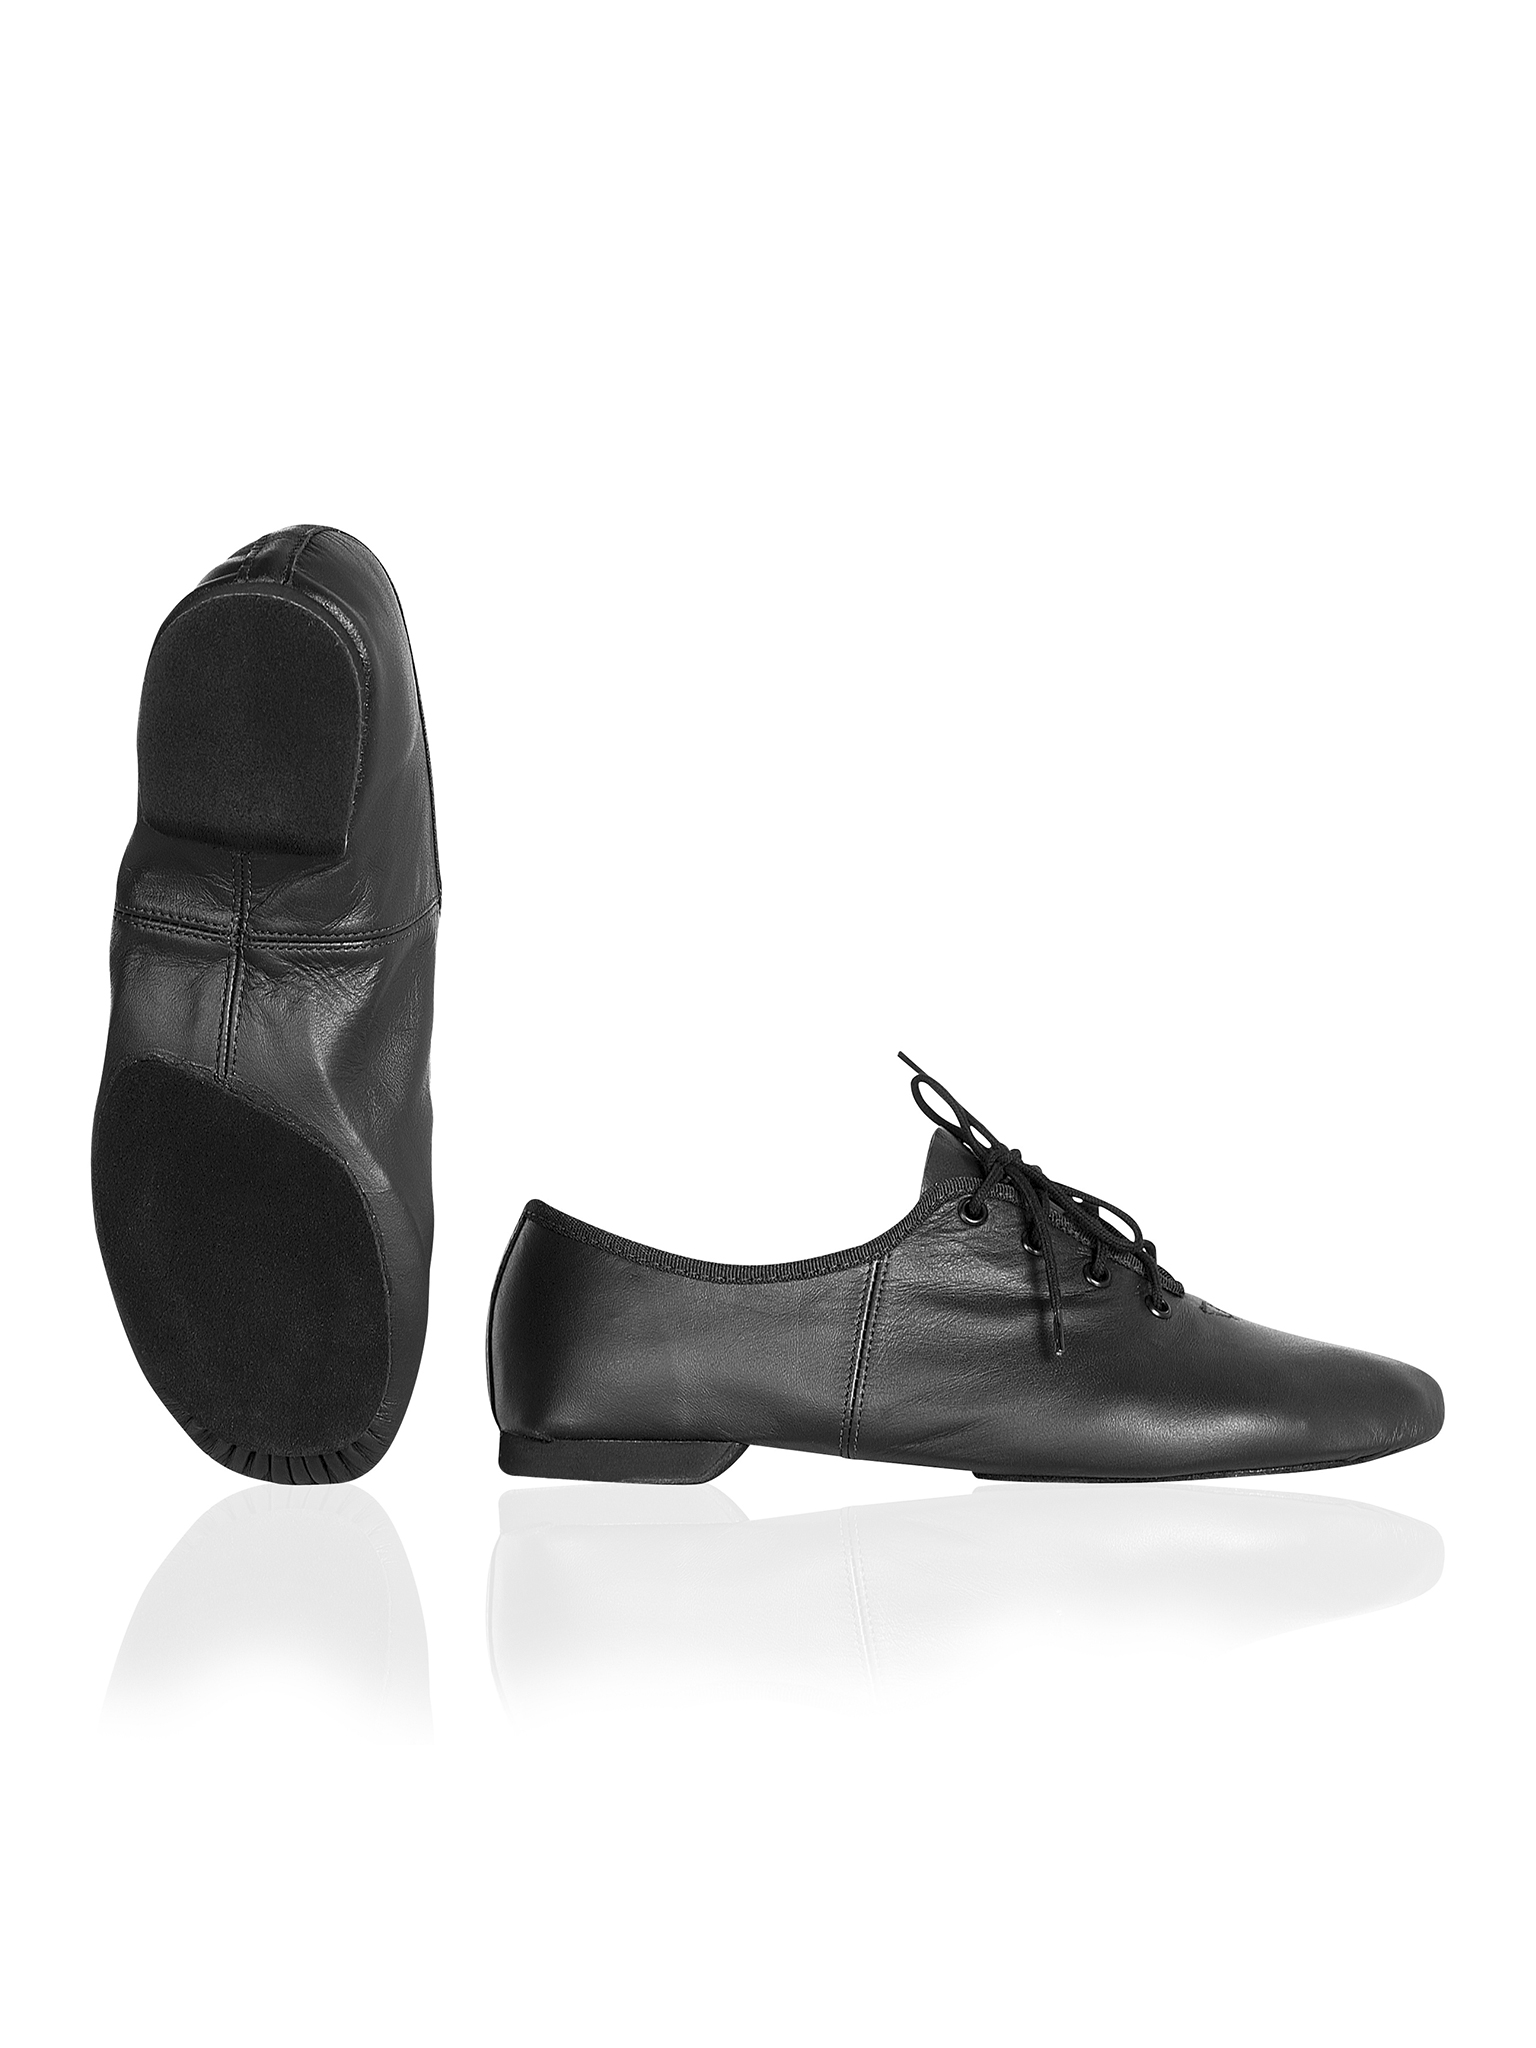 Image of   Papillon Jazz shoe chrome split sole Women - Black - 35